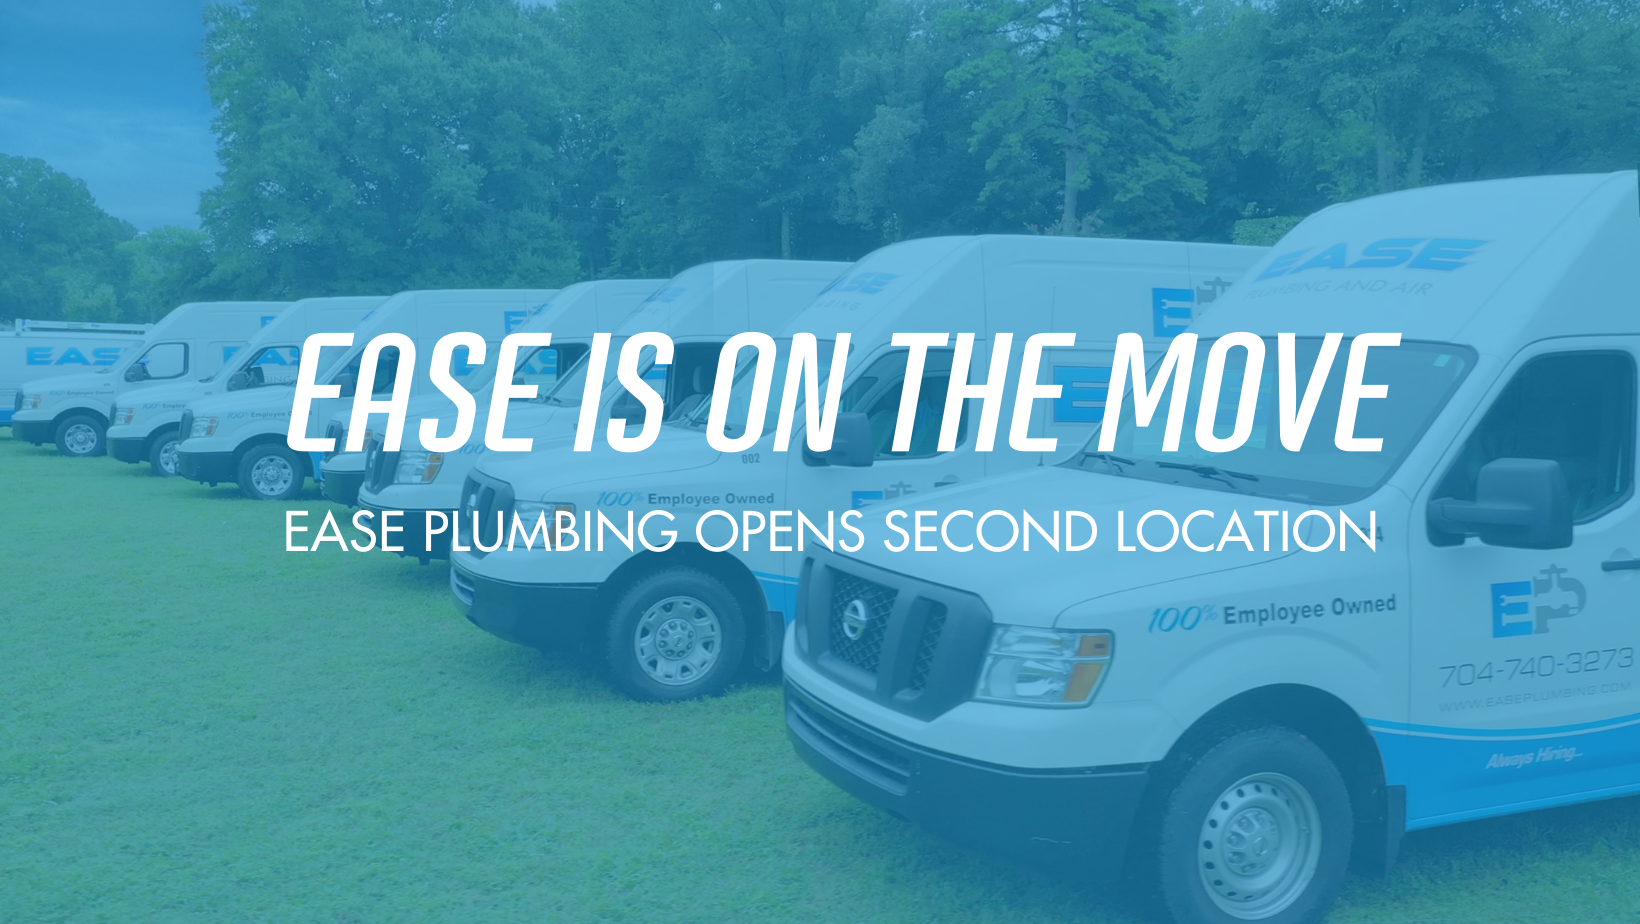 Ease Plumbing Opens A Second Location in Greenville, NC